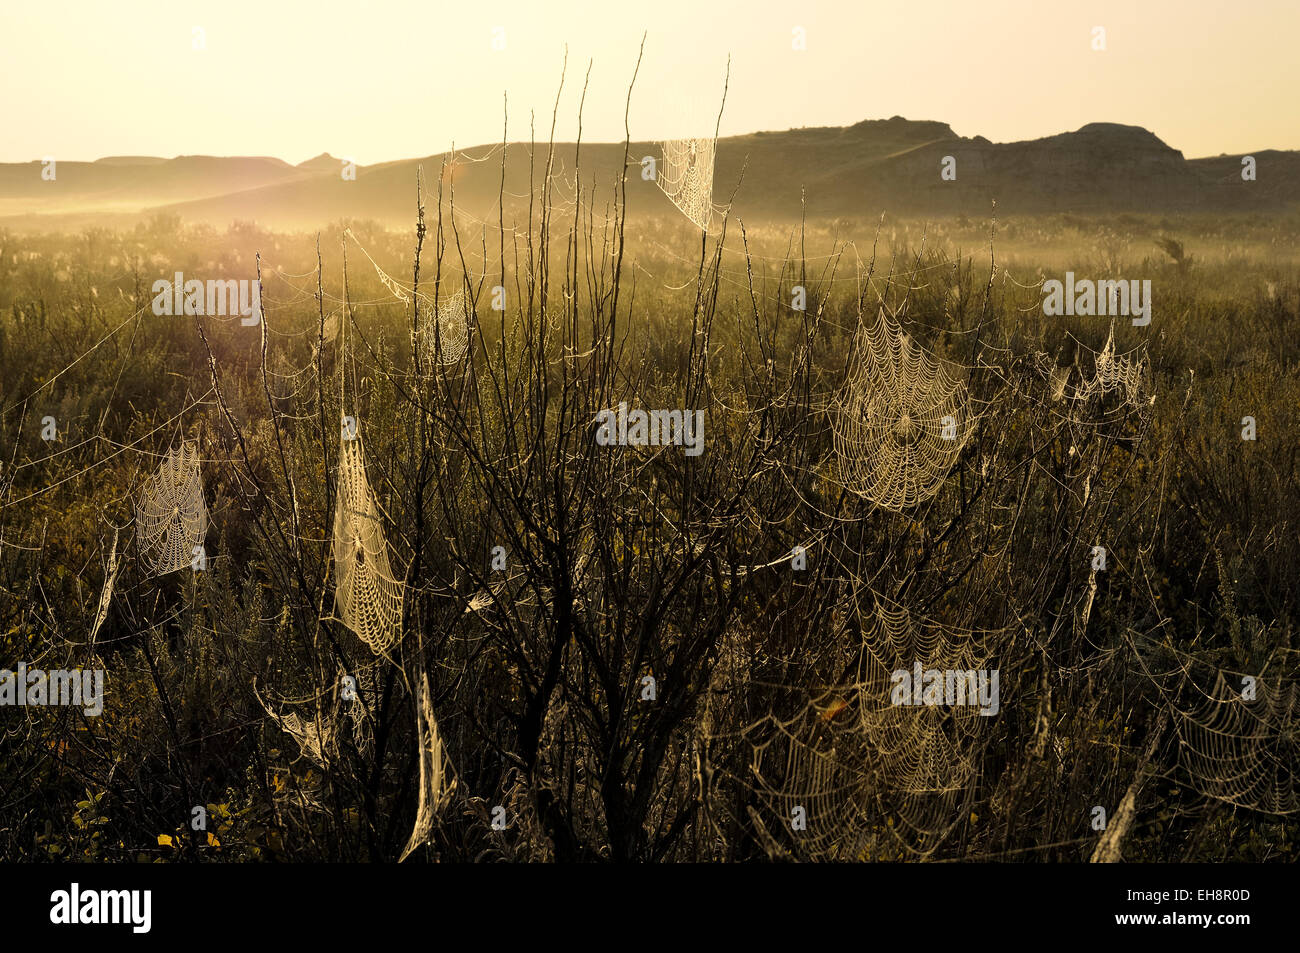 Meadow at dawn with spider webs. - Stock Image